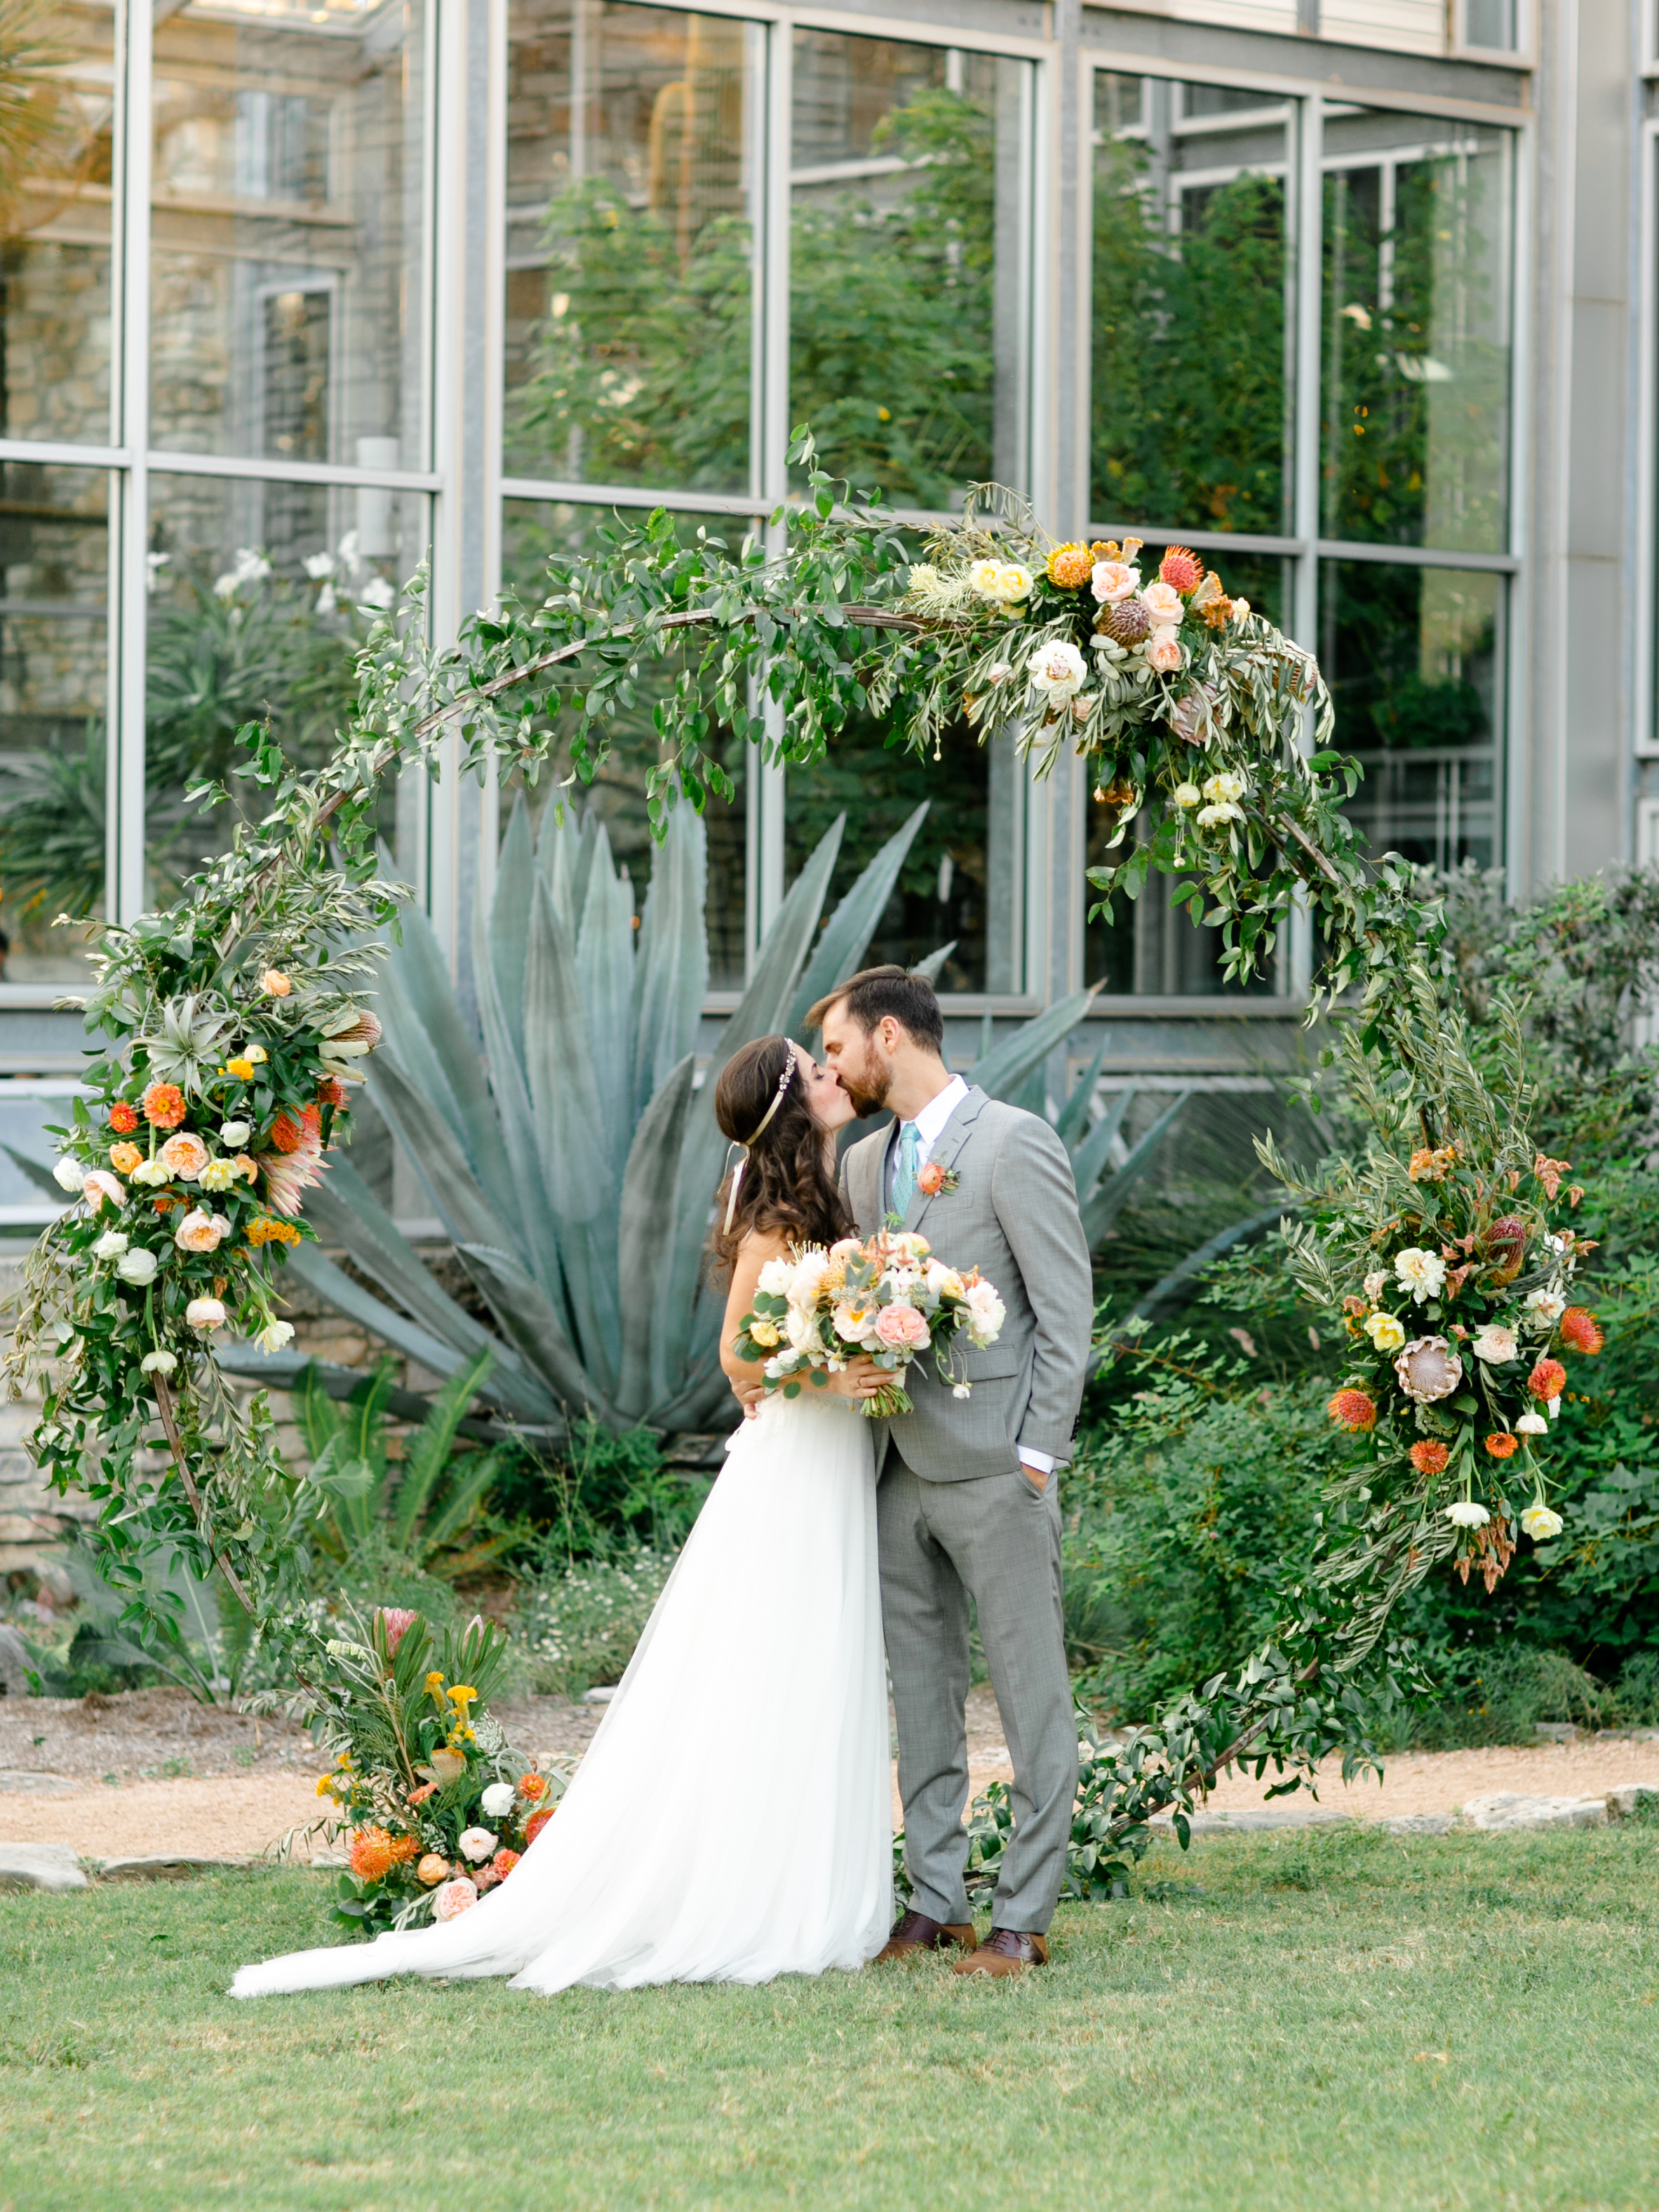 Best-Austin-Denver-California-Wedding-Photographer-Greenhouse-Driftwood31.jpg